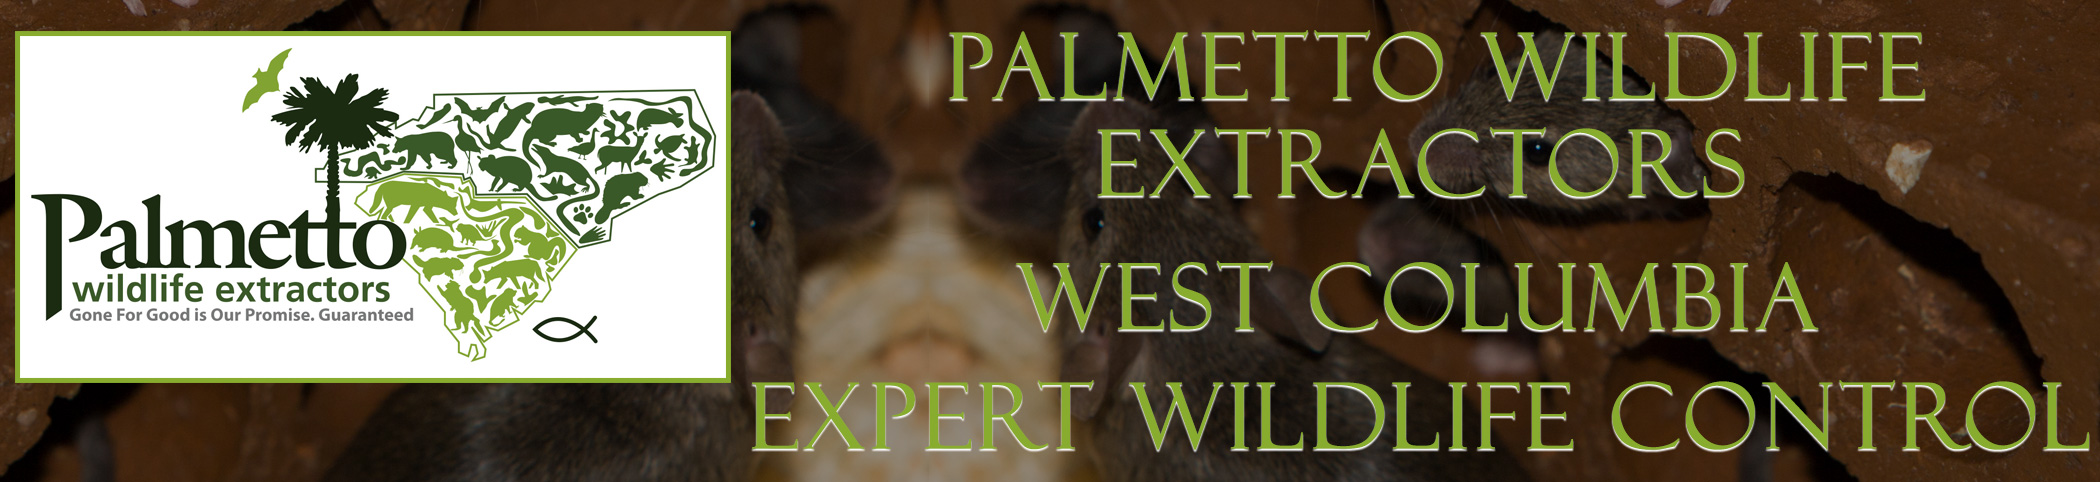 Palmetto Wildlife Extractors West Columbia South Carolina header image